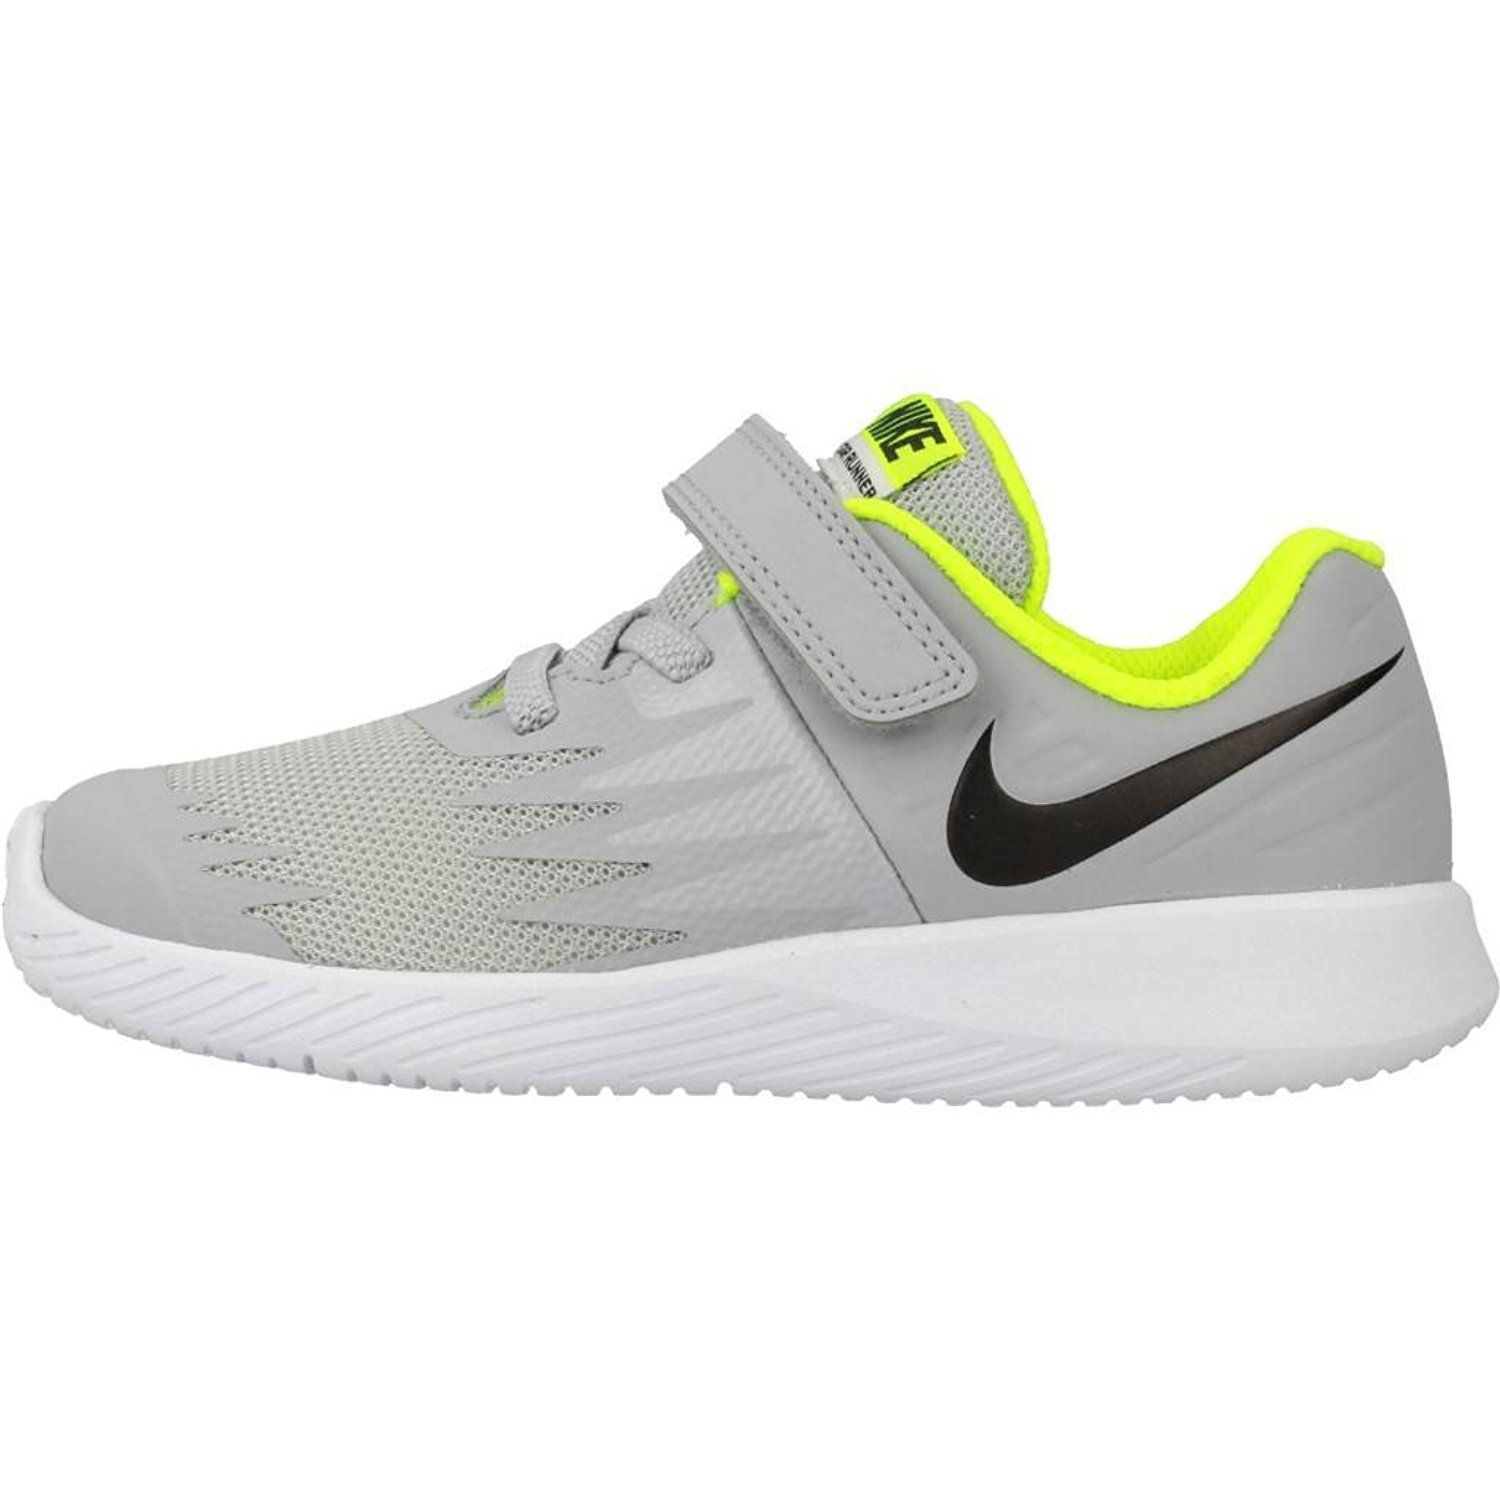 detailed look 2f0bc 8af4f Nike Star Runner (TDV), Chaussons Mixte bébé  Amazon.fr  Sports et Loisirs